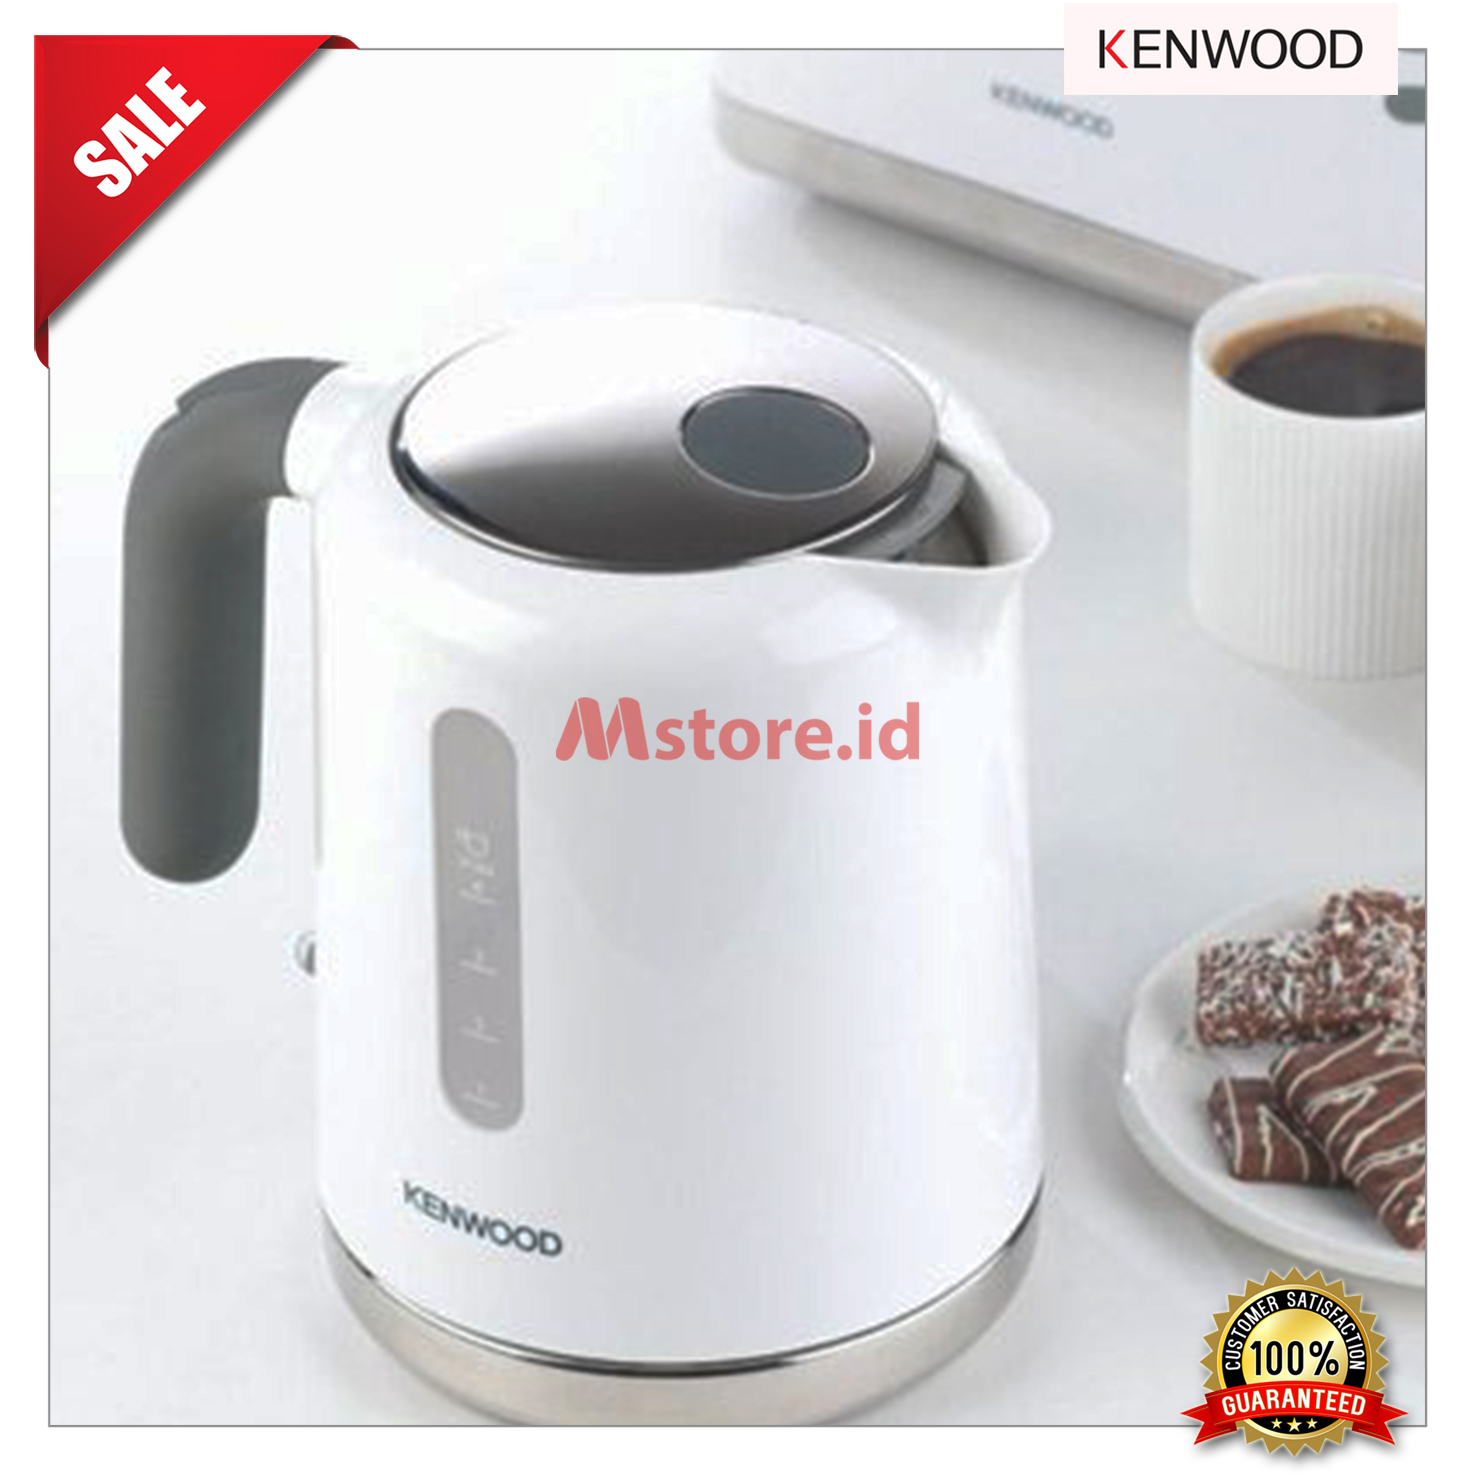 KENWOOD JKP350 KETTLEJUG WHITE_pemanas air_mstore id_multimayaka_2